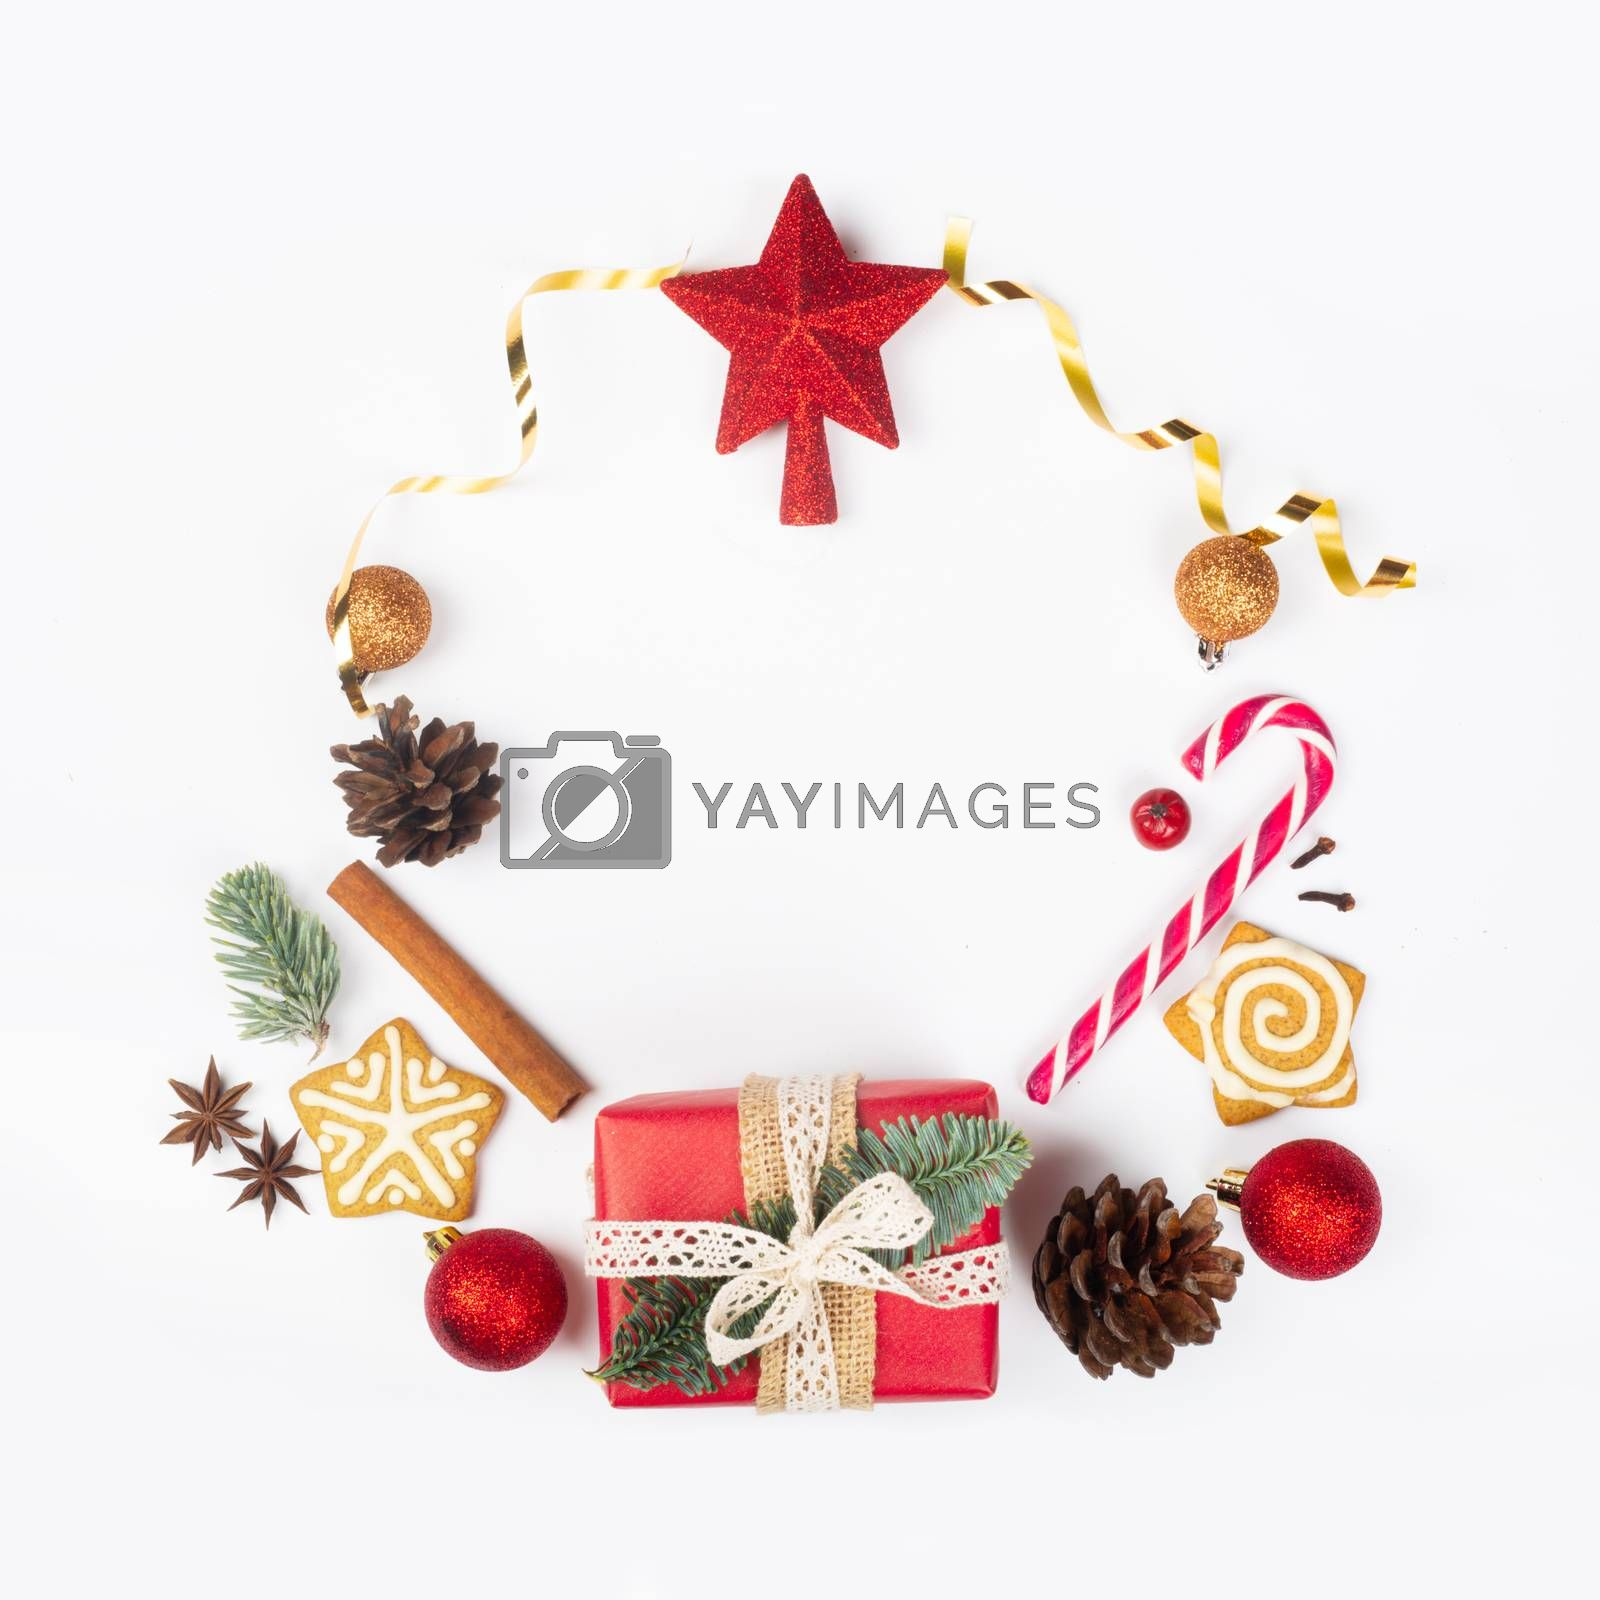 Minimalistic Christmas flat lay wreath composition of objects design top view on white background. New Year concept.